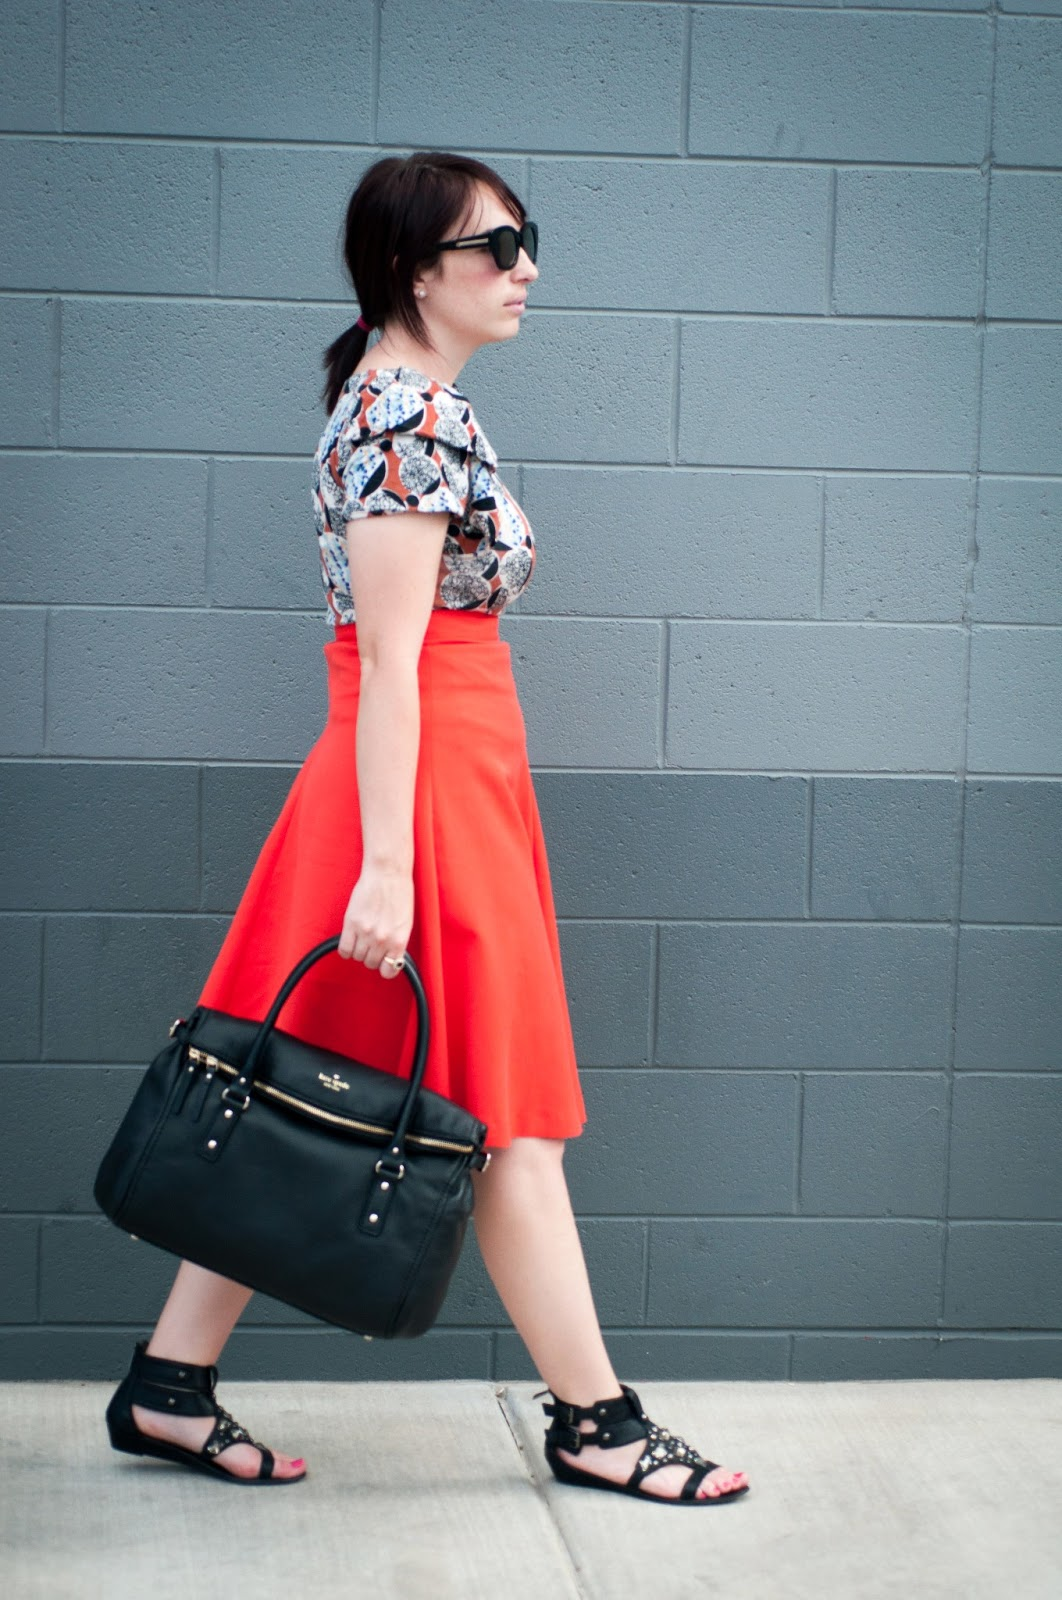 fashion blog, style blog, kate spade new york, h and m, sam edleman, anthropologie, ootd, karen walker